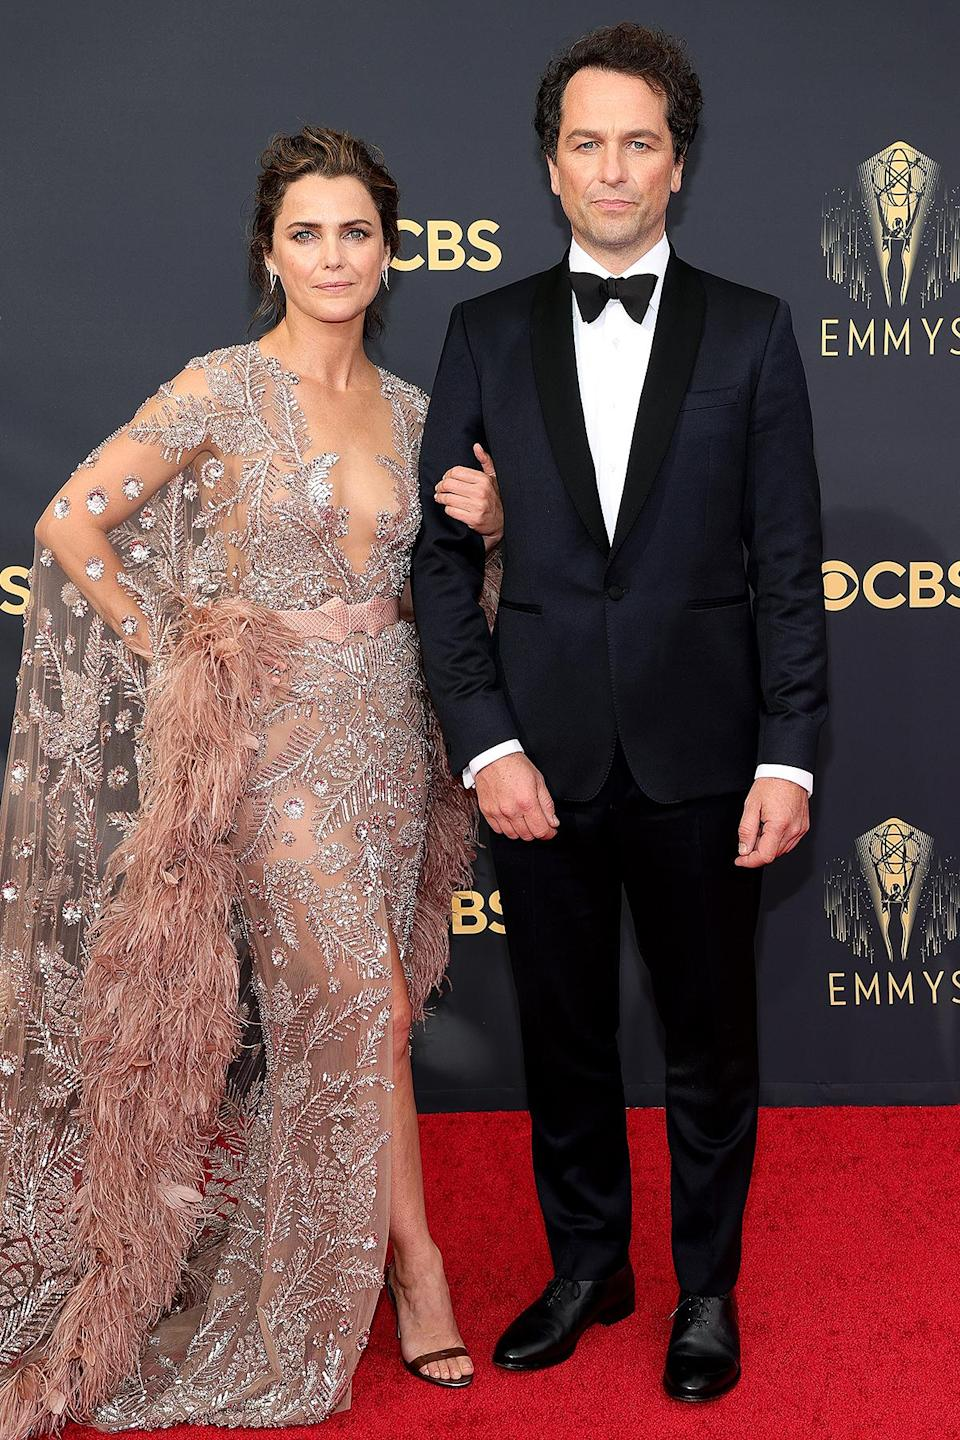 <p>The couple, who starred in <em>The Americans </em>together from 2014 to 2018, channeled Old Hollywood glamour with their red carpet looks. Rhys wore a classic black tux, which Russell pulled out all the stops in a sheer, sequined gown including feather sleeves. </p>